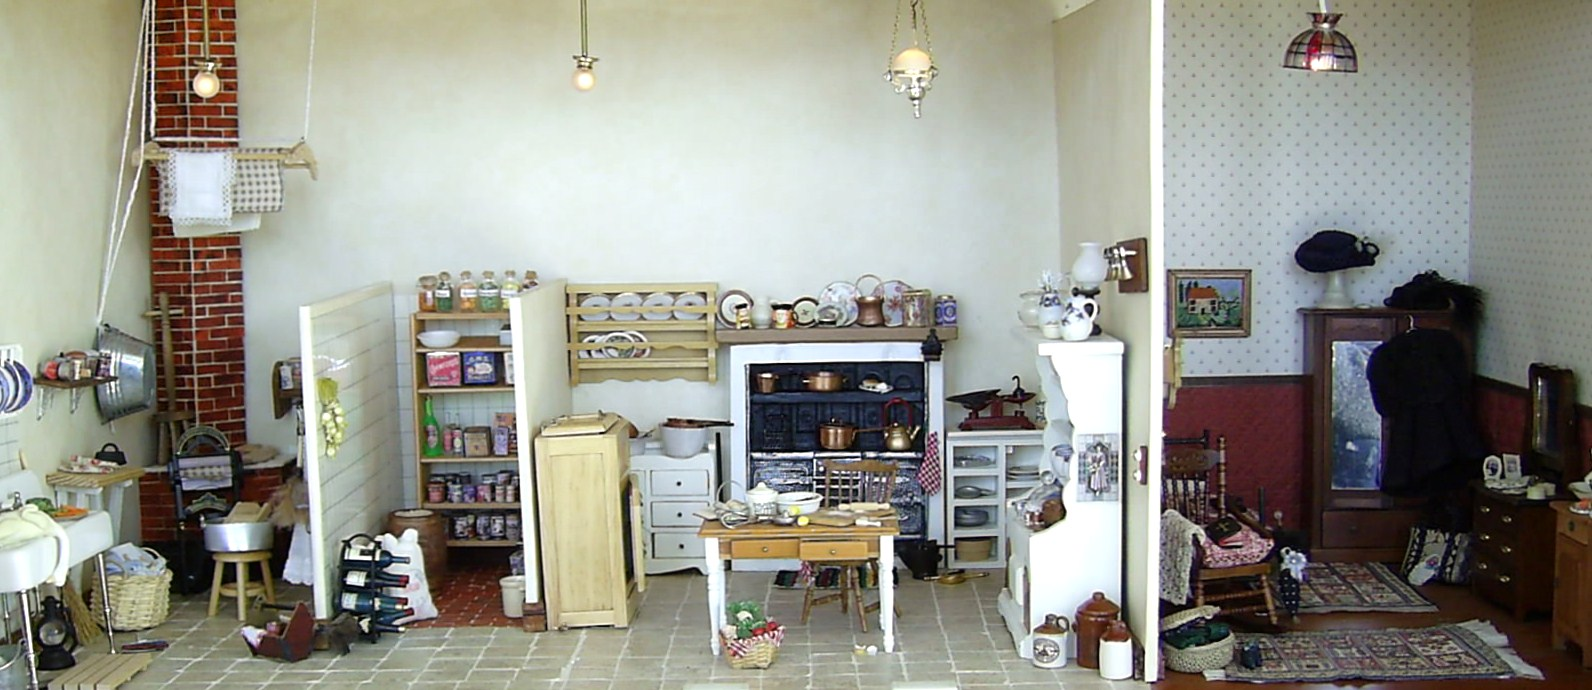 Edwardian Kitchen Dolls Houses And Minis Edwardian Dolls House The Ground Floor